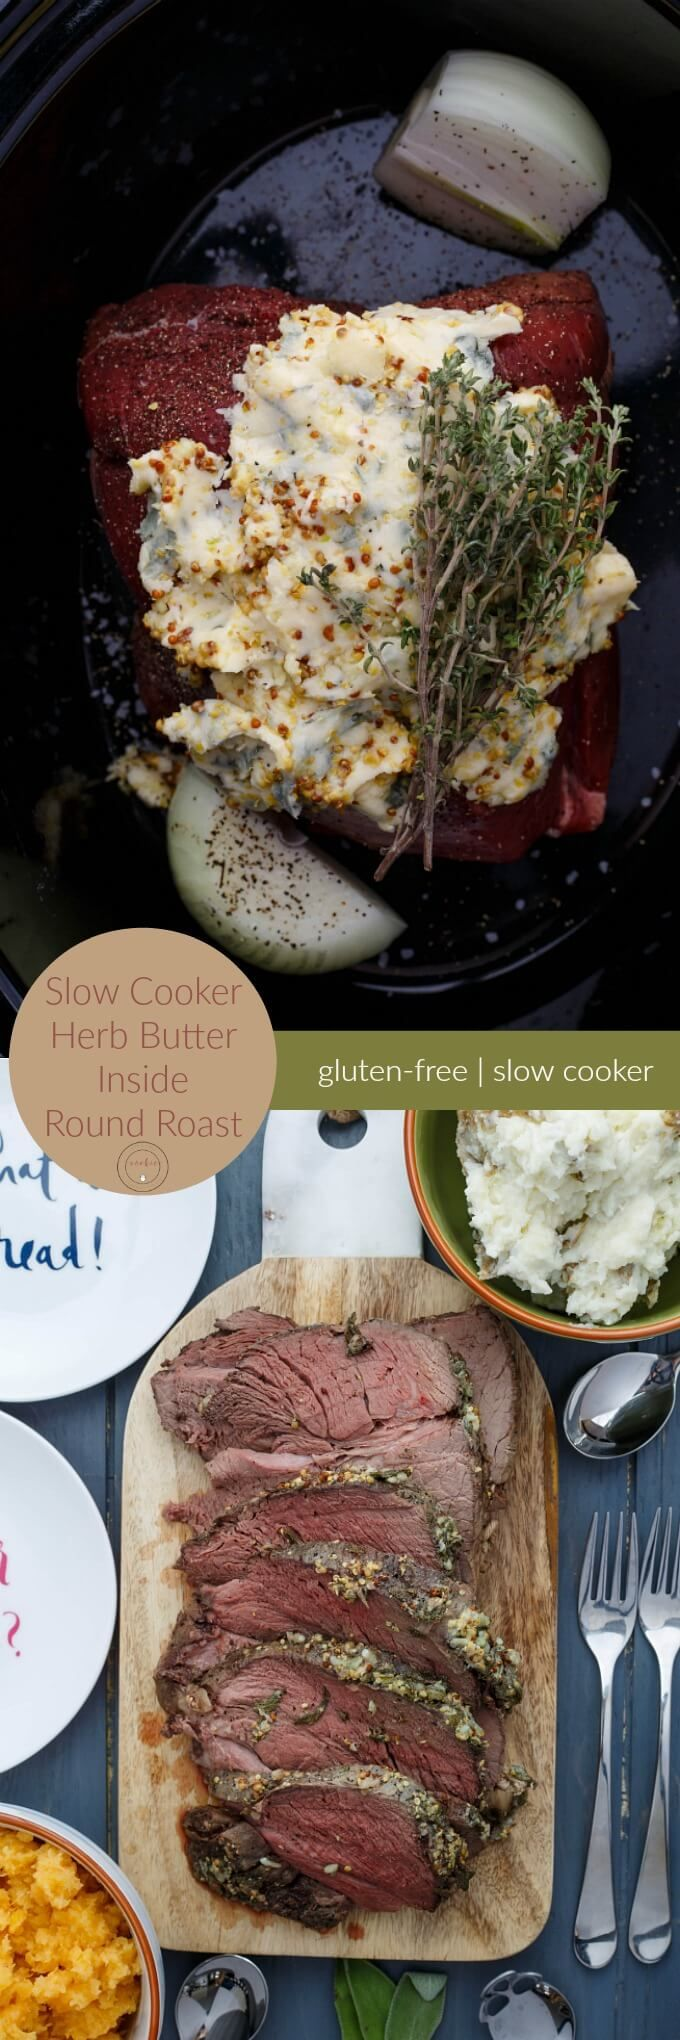 Slow Cooker Herb Butter Inside Round Roast | http://thecookiewriter.com | #beef #roast #slowcooker #Christmas #newyears #dinner